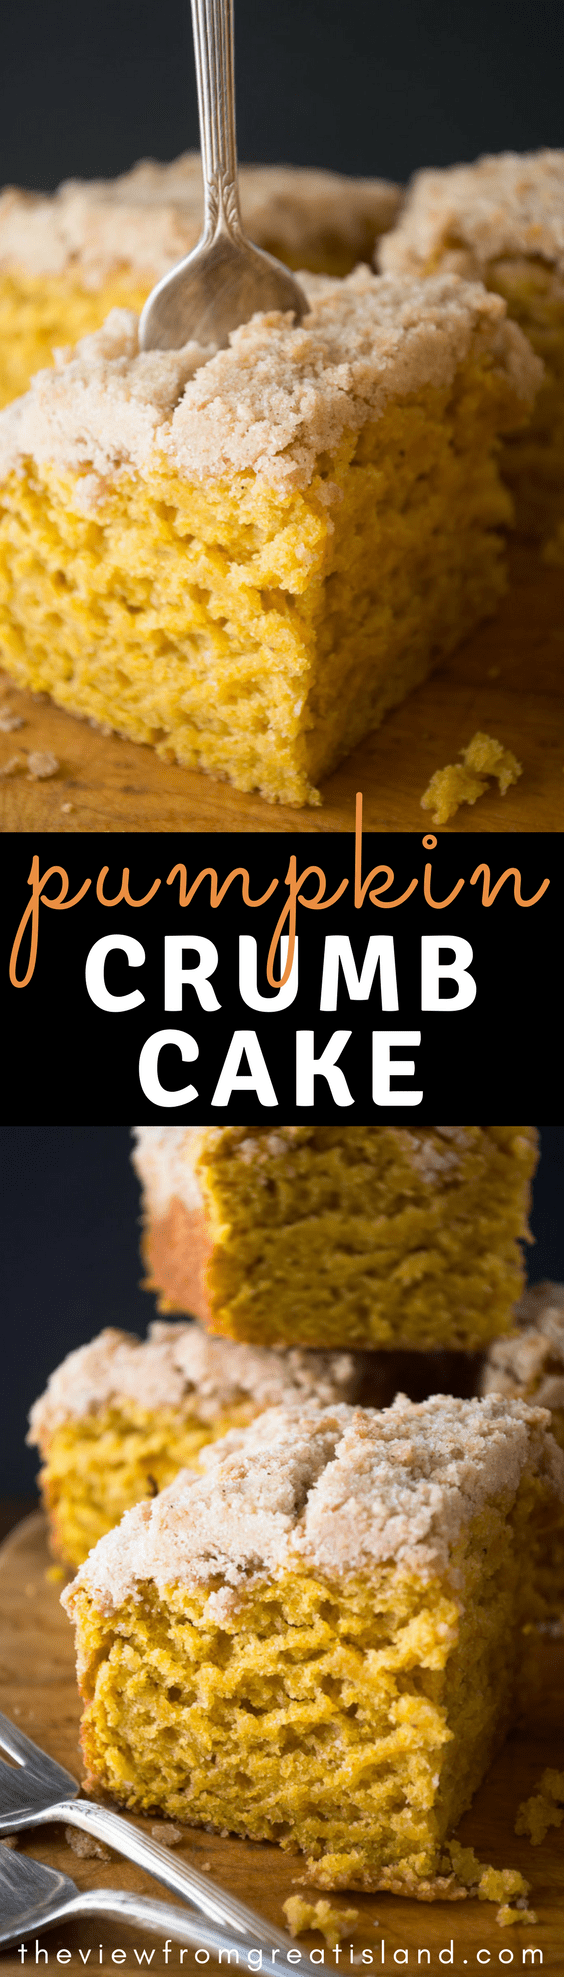 My favorite Pumpkin Crumb Cake is a classic fall coffee cake enriched with pumpkin and perfectly spiced. It has become a fall breakfast tradition in our house! #cake #pumpkindessert #pumpkin #falldessert #fallbreakfast #pumpkinpoundcake #quickbread #poundcake #pumpkinbread